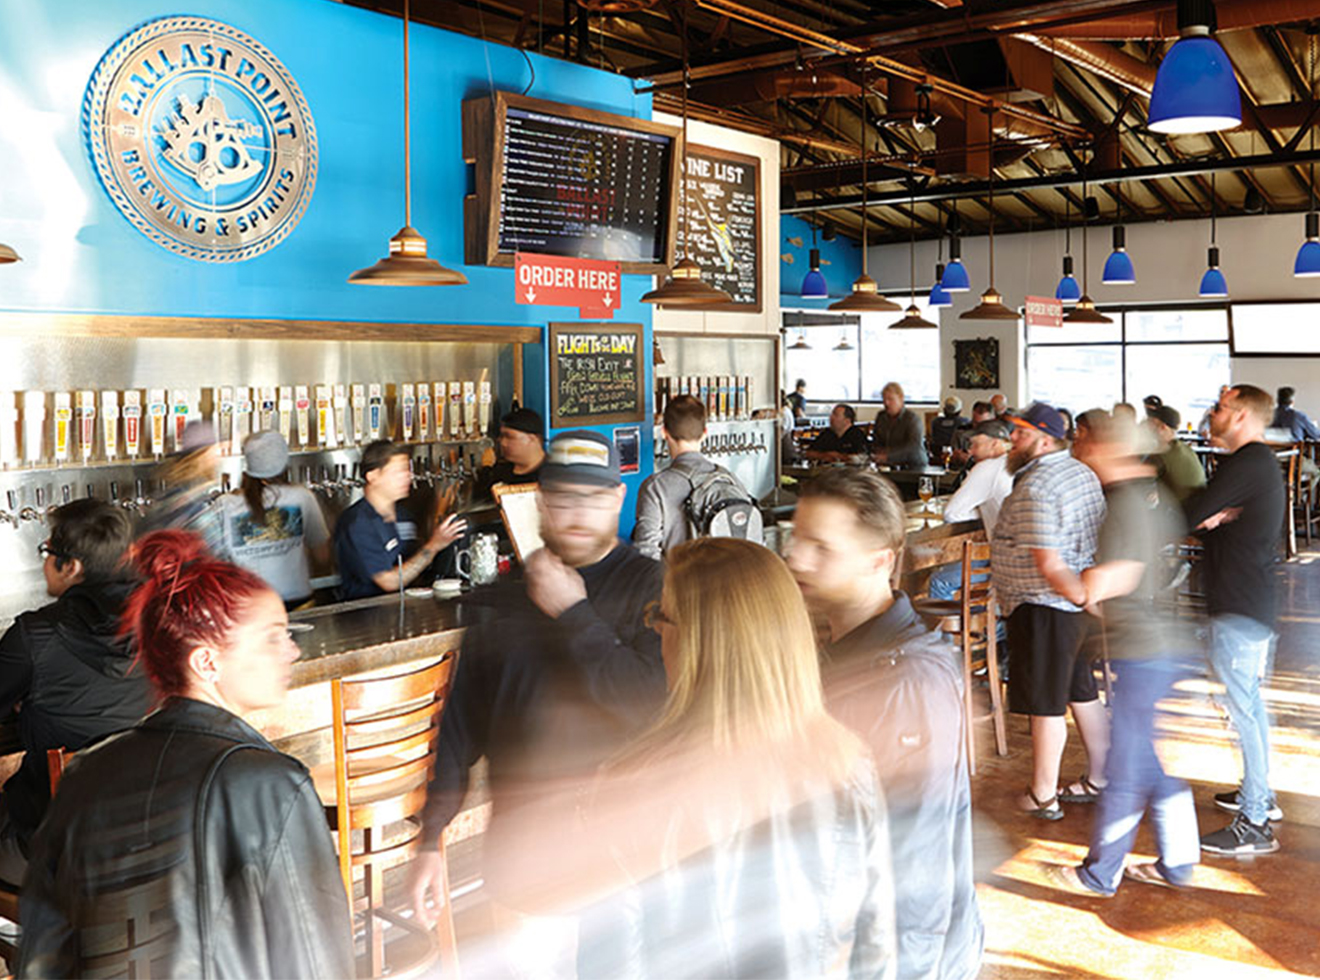 Ballast Point Brewery